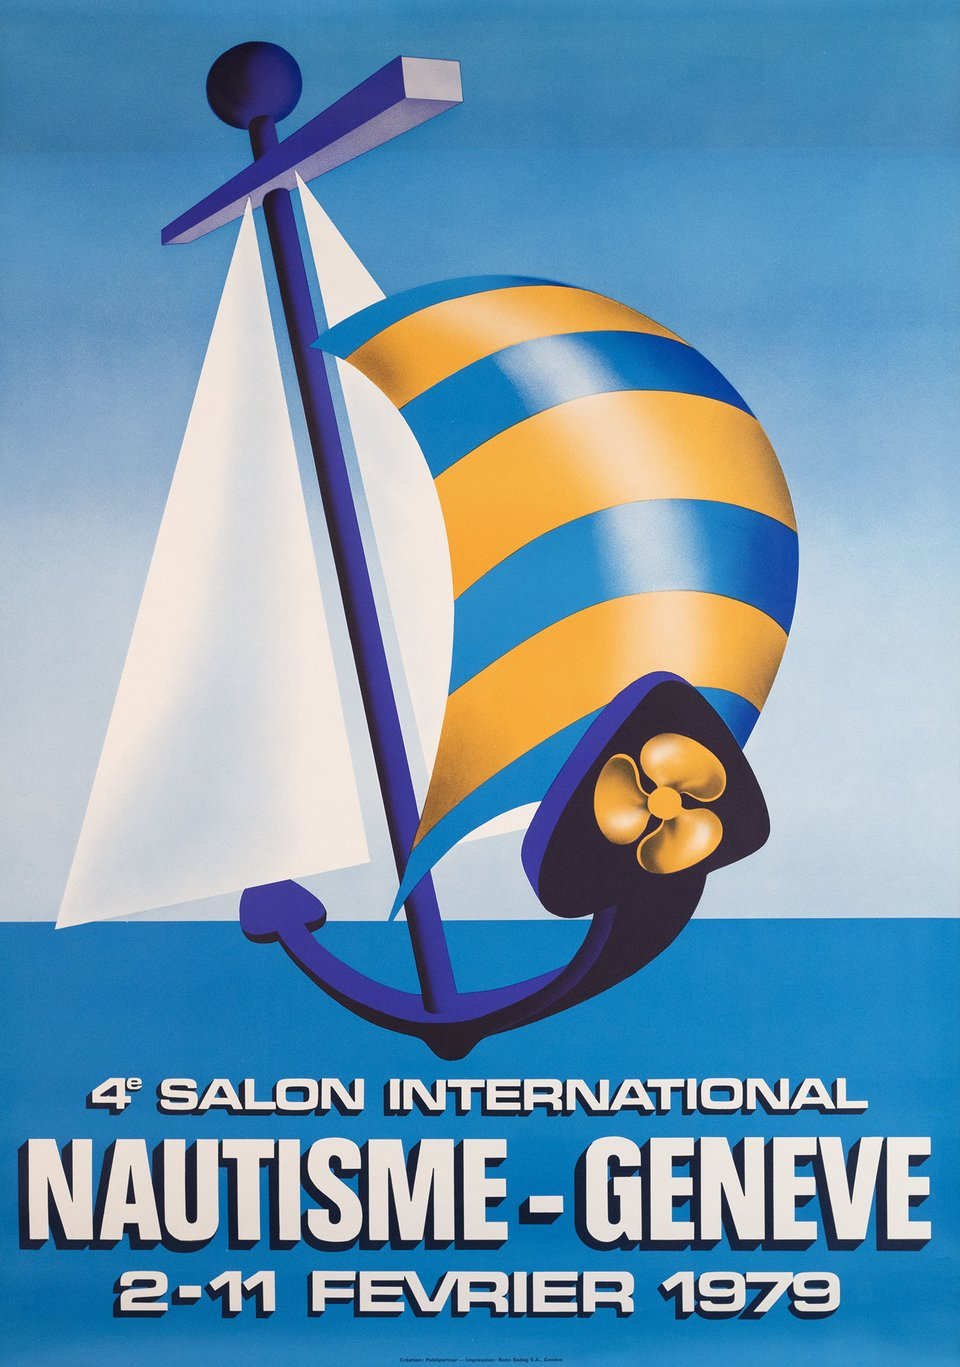 4. Salon International Nautisme, Genève – Vintage poster – PUBLIPARTNER – 1979